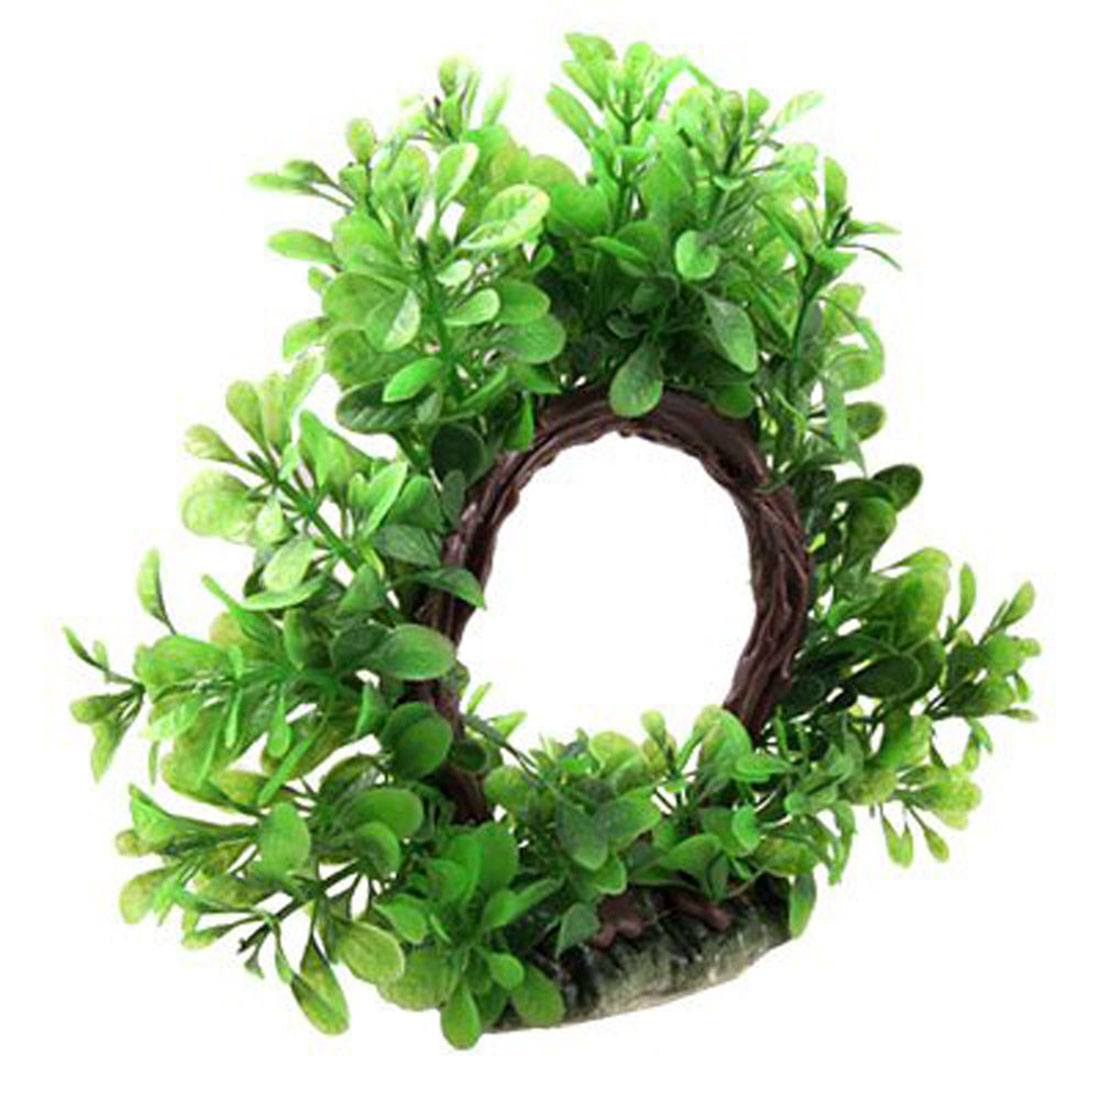 China aquarium fish tank price - High Quality Curve Artificial Plastic Flexible Circular Water Plant Decor For Fish Tank Ornament China